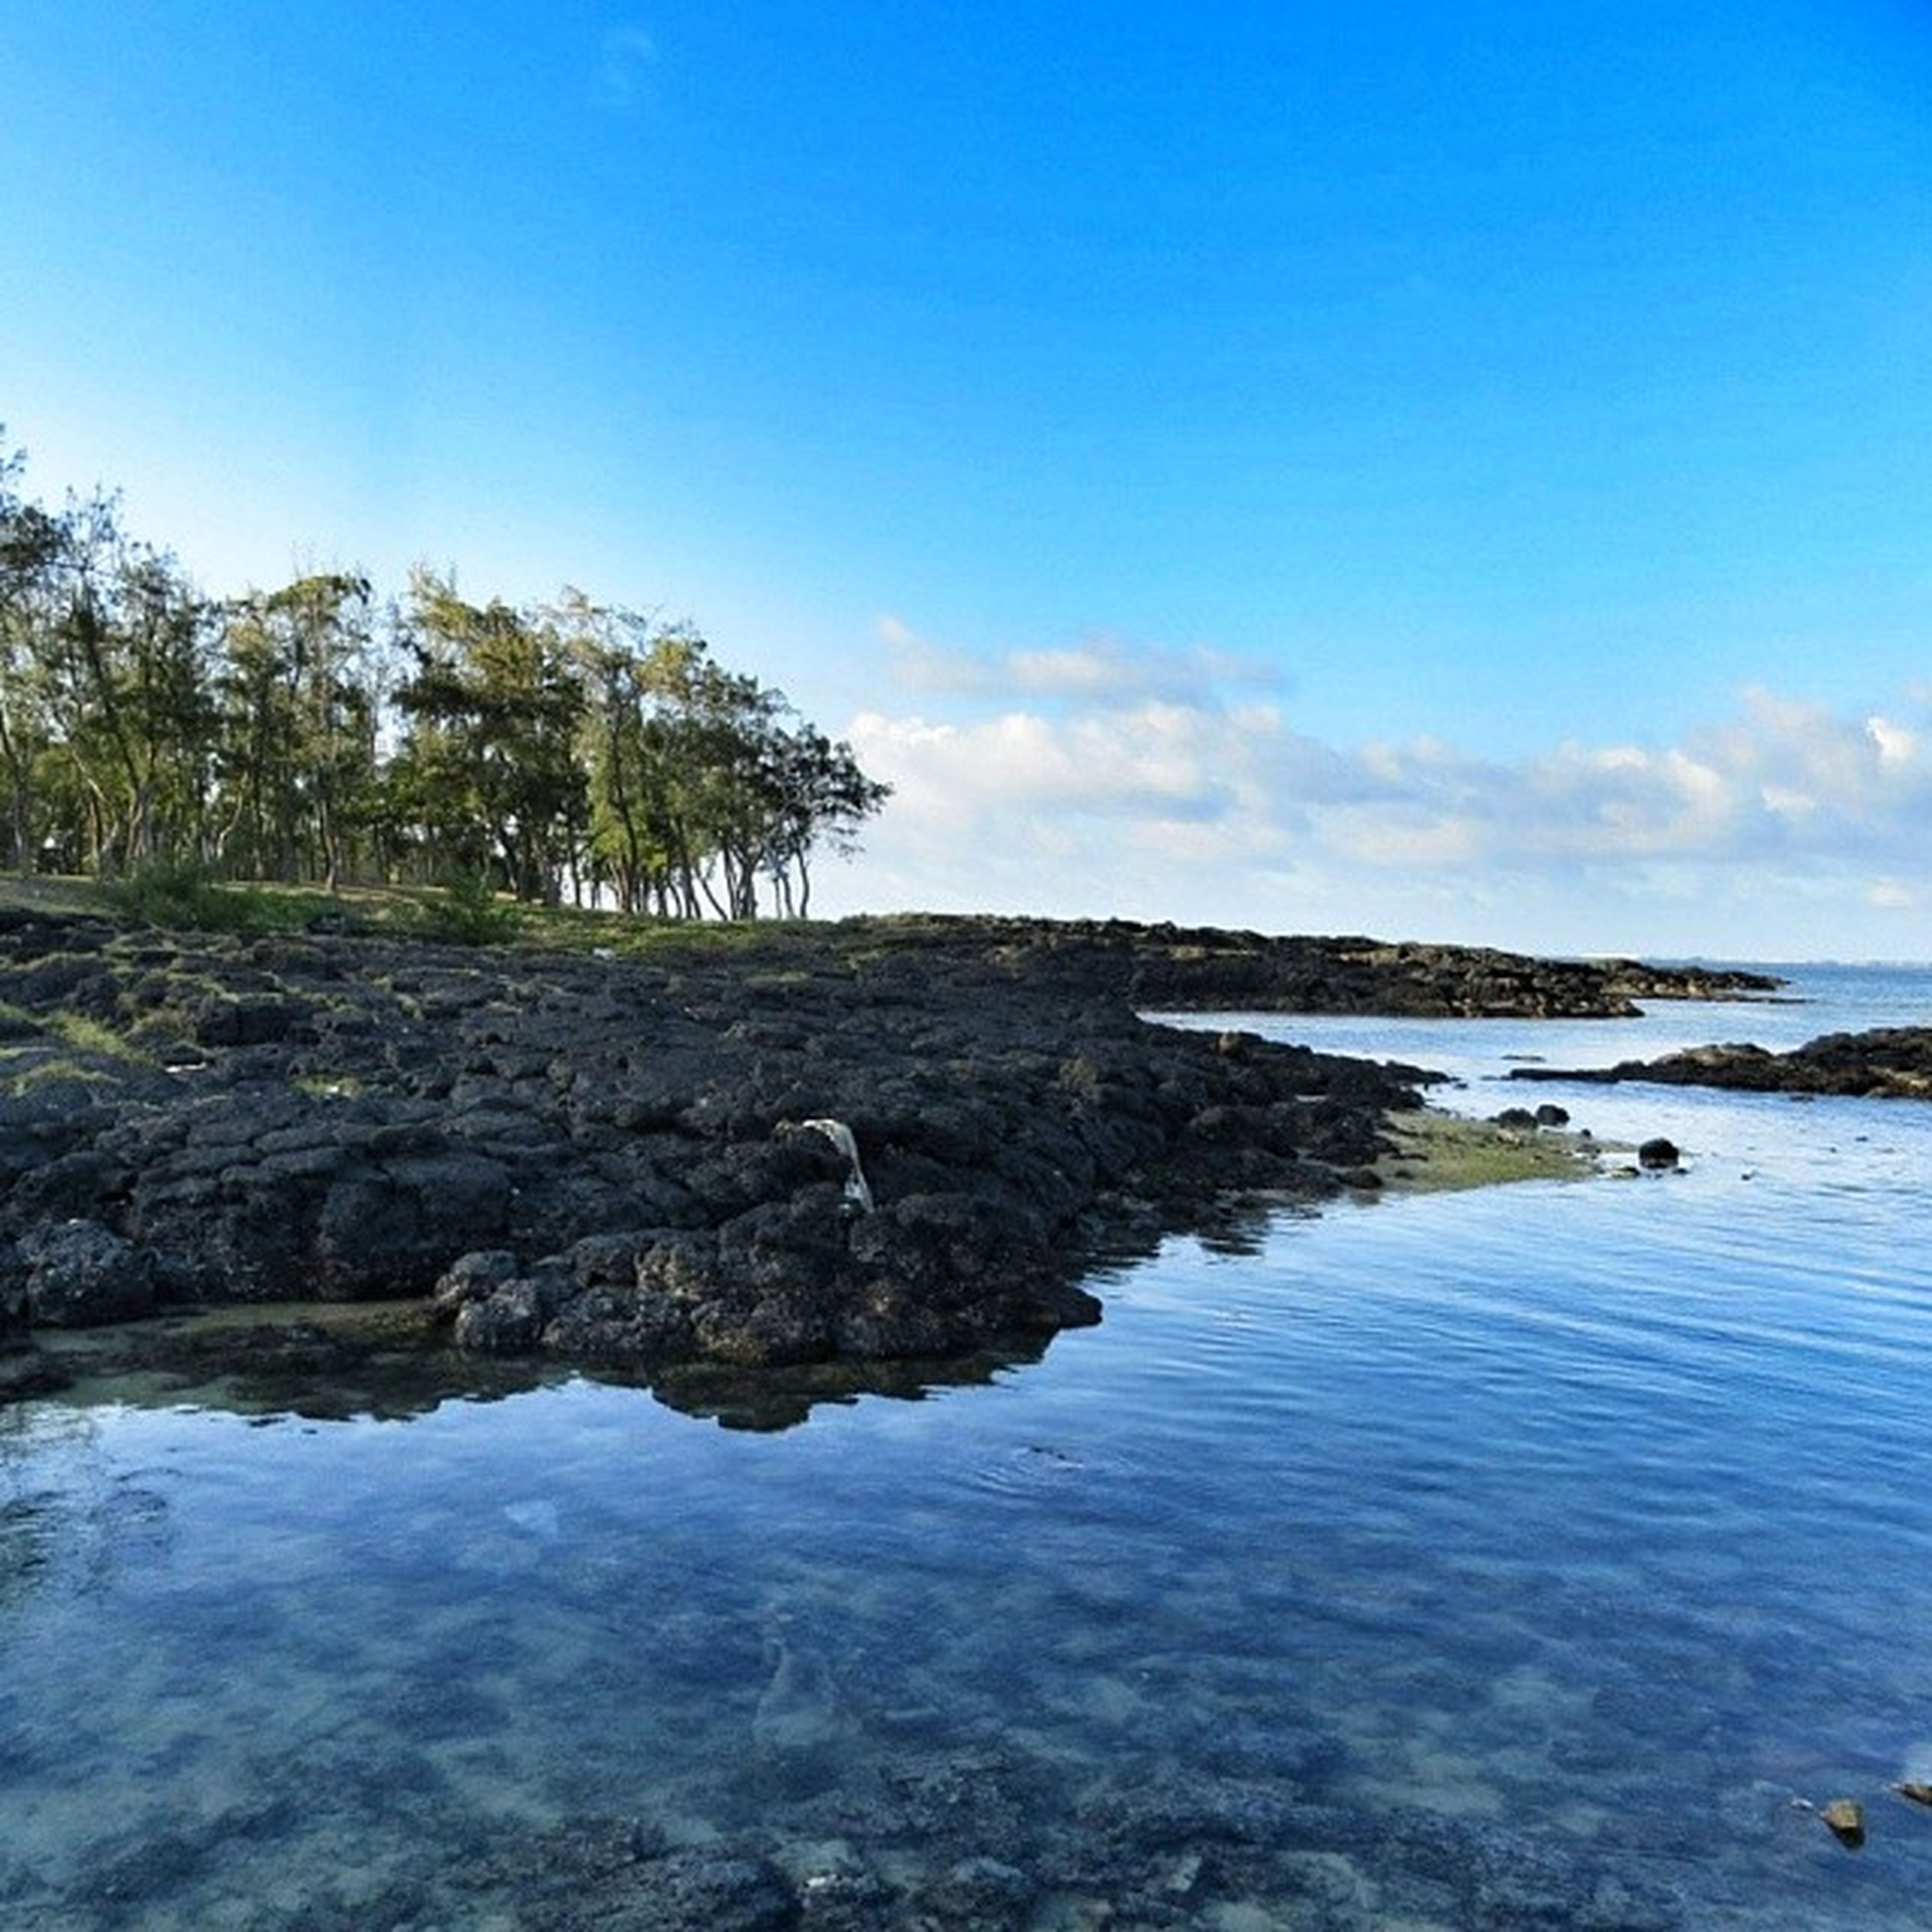 water, tranquil scene, tranquility, scenics, sea, beauty in nature, blue, rock - object, rock formation, nature, sky, tree, cliff, beach, idyllic, rock, horizon over water, clear sky, non-urban scene, shore